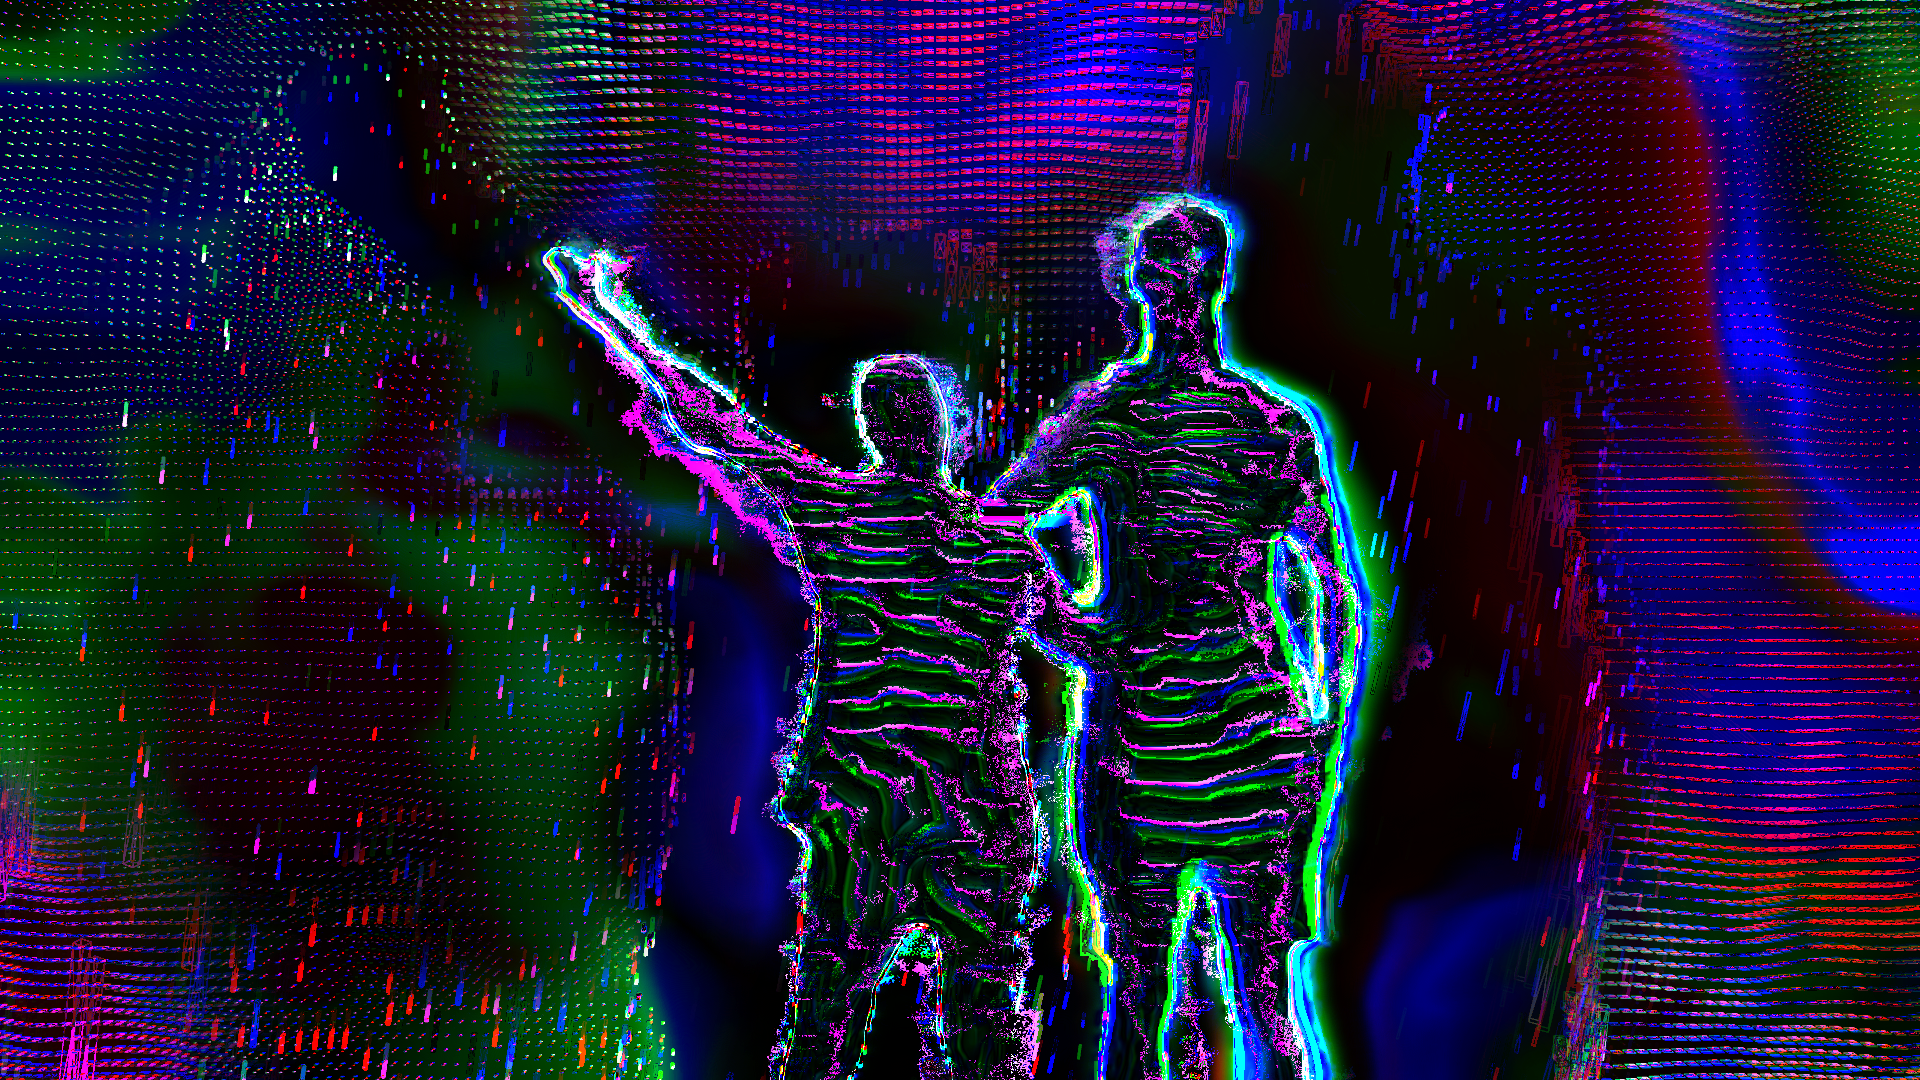 Two figures posing with arms outstretched. Image is texturized with pink and green lines